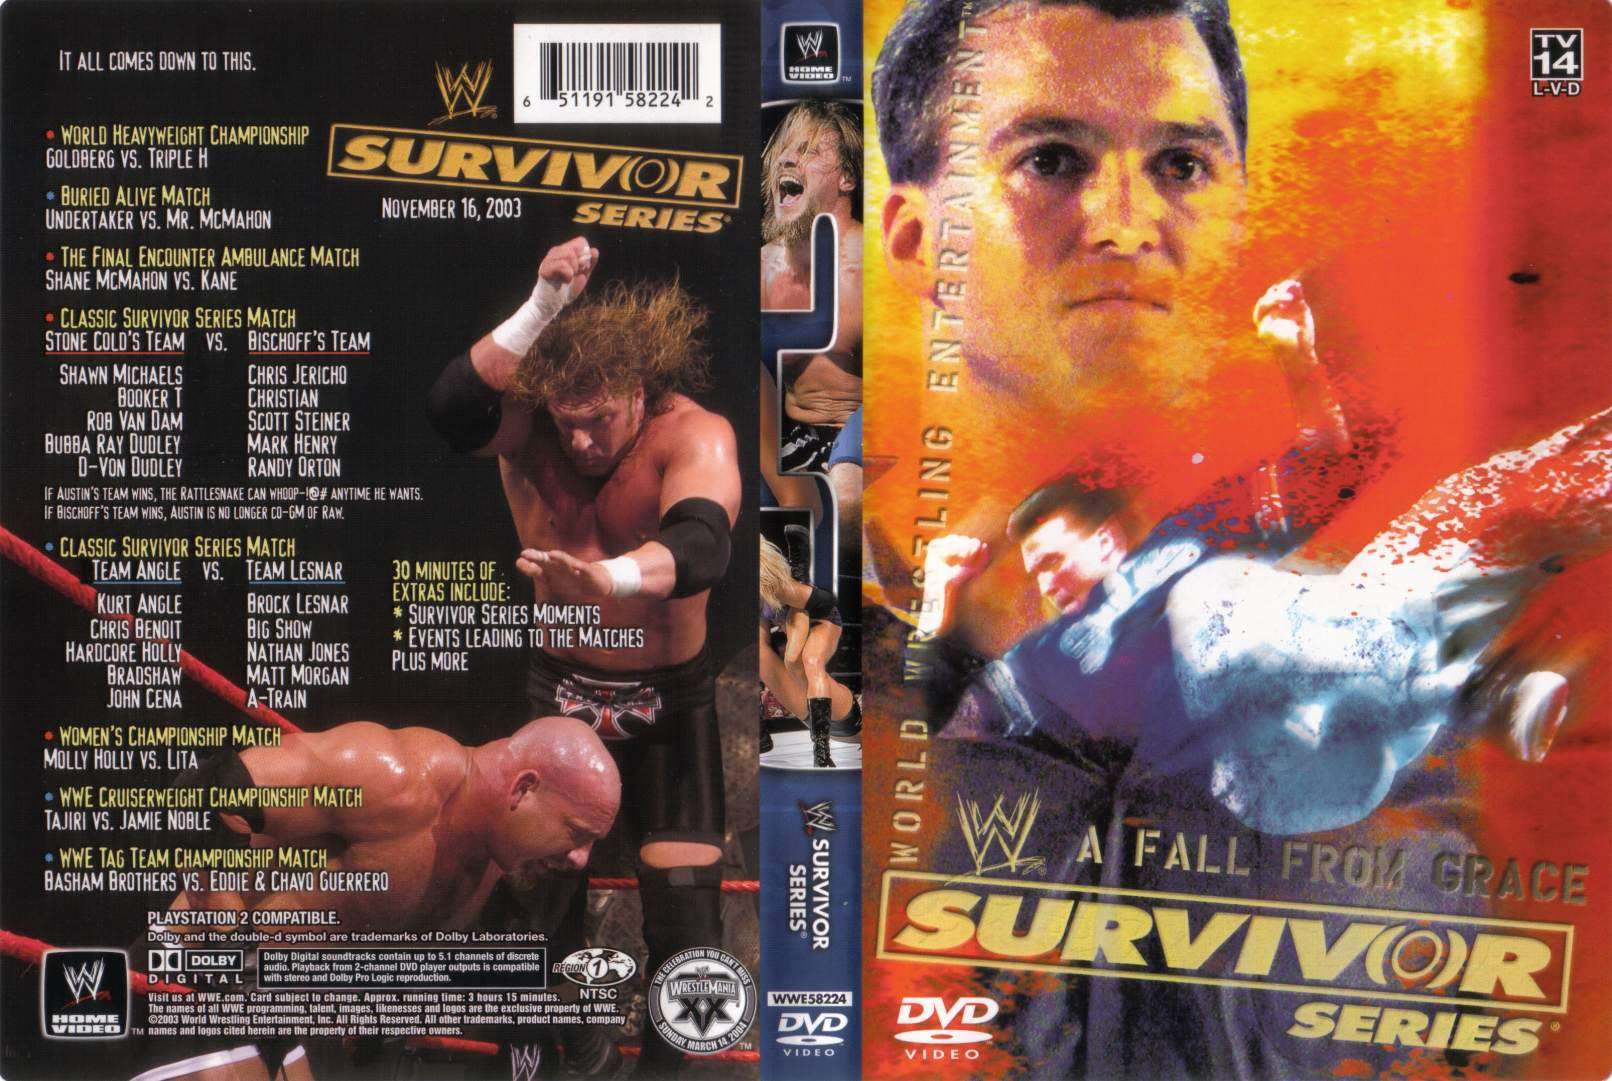 These Are The Thoughts From My Head: Stick or Twist: WWE